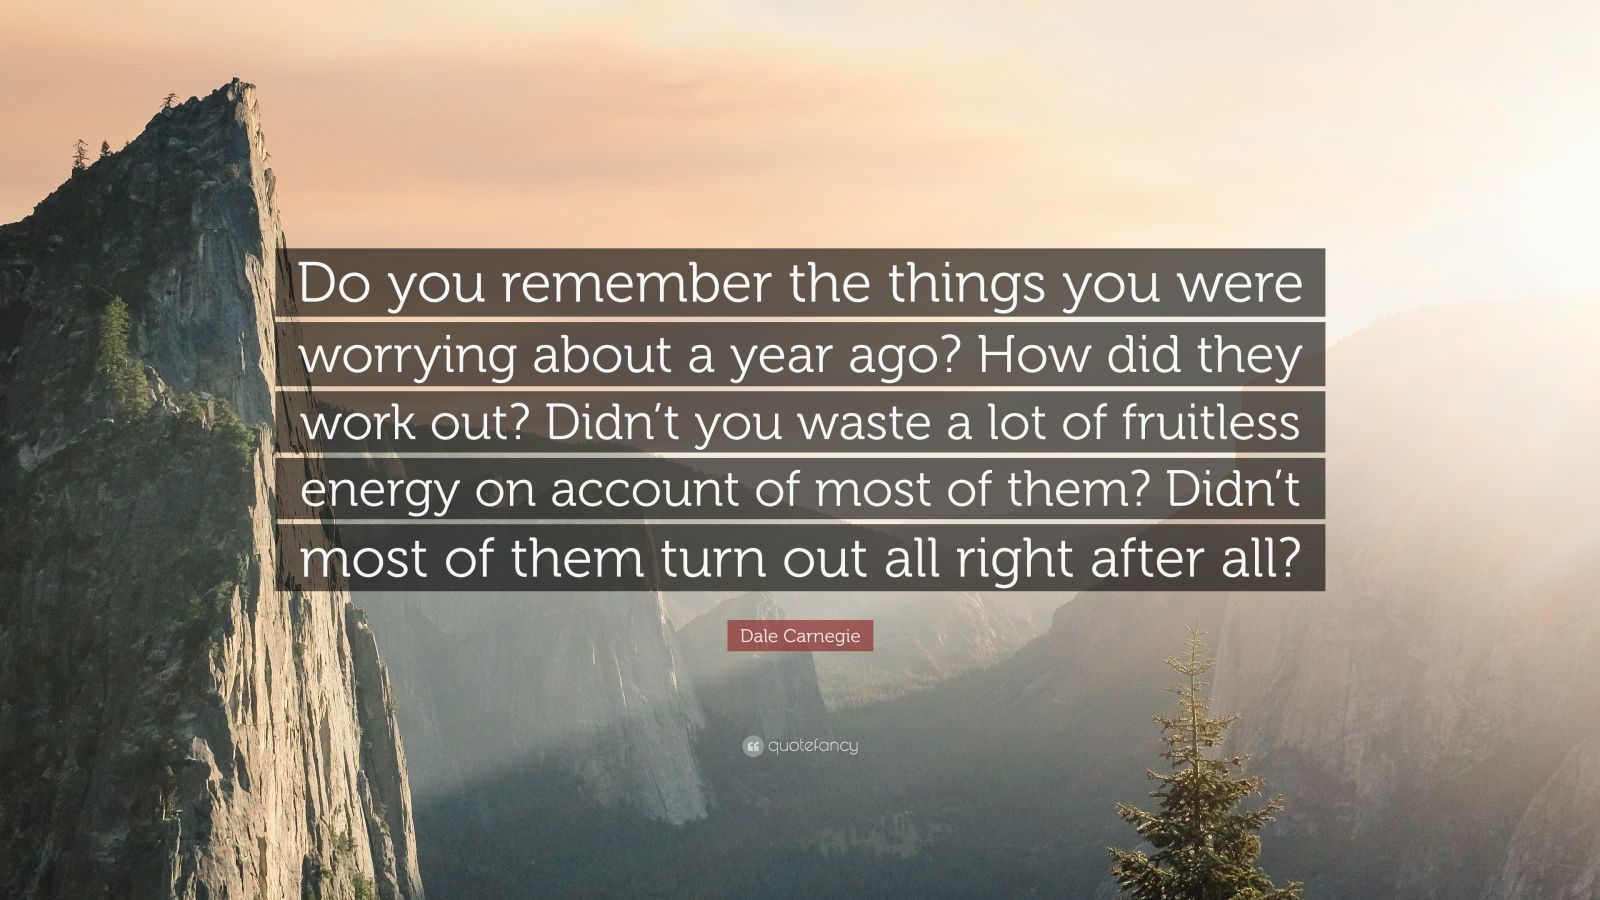 """Dale Carnegie Quote: """"Do you remember the things you were worrying about a year ago? How did they work out? Didn't you waste a lot of fruitless energy on account of most of them? Didn't most of them turn out all right after all?"""""""